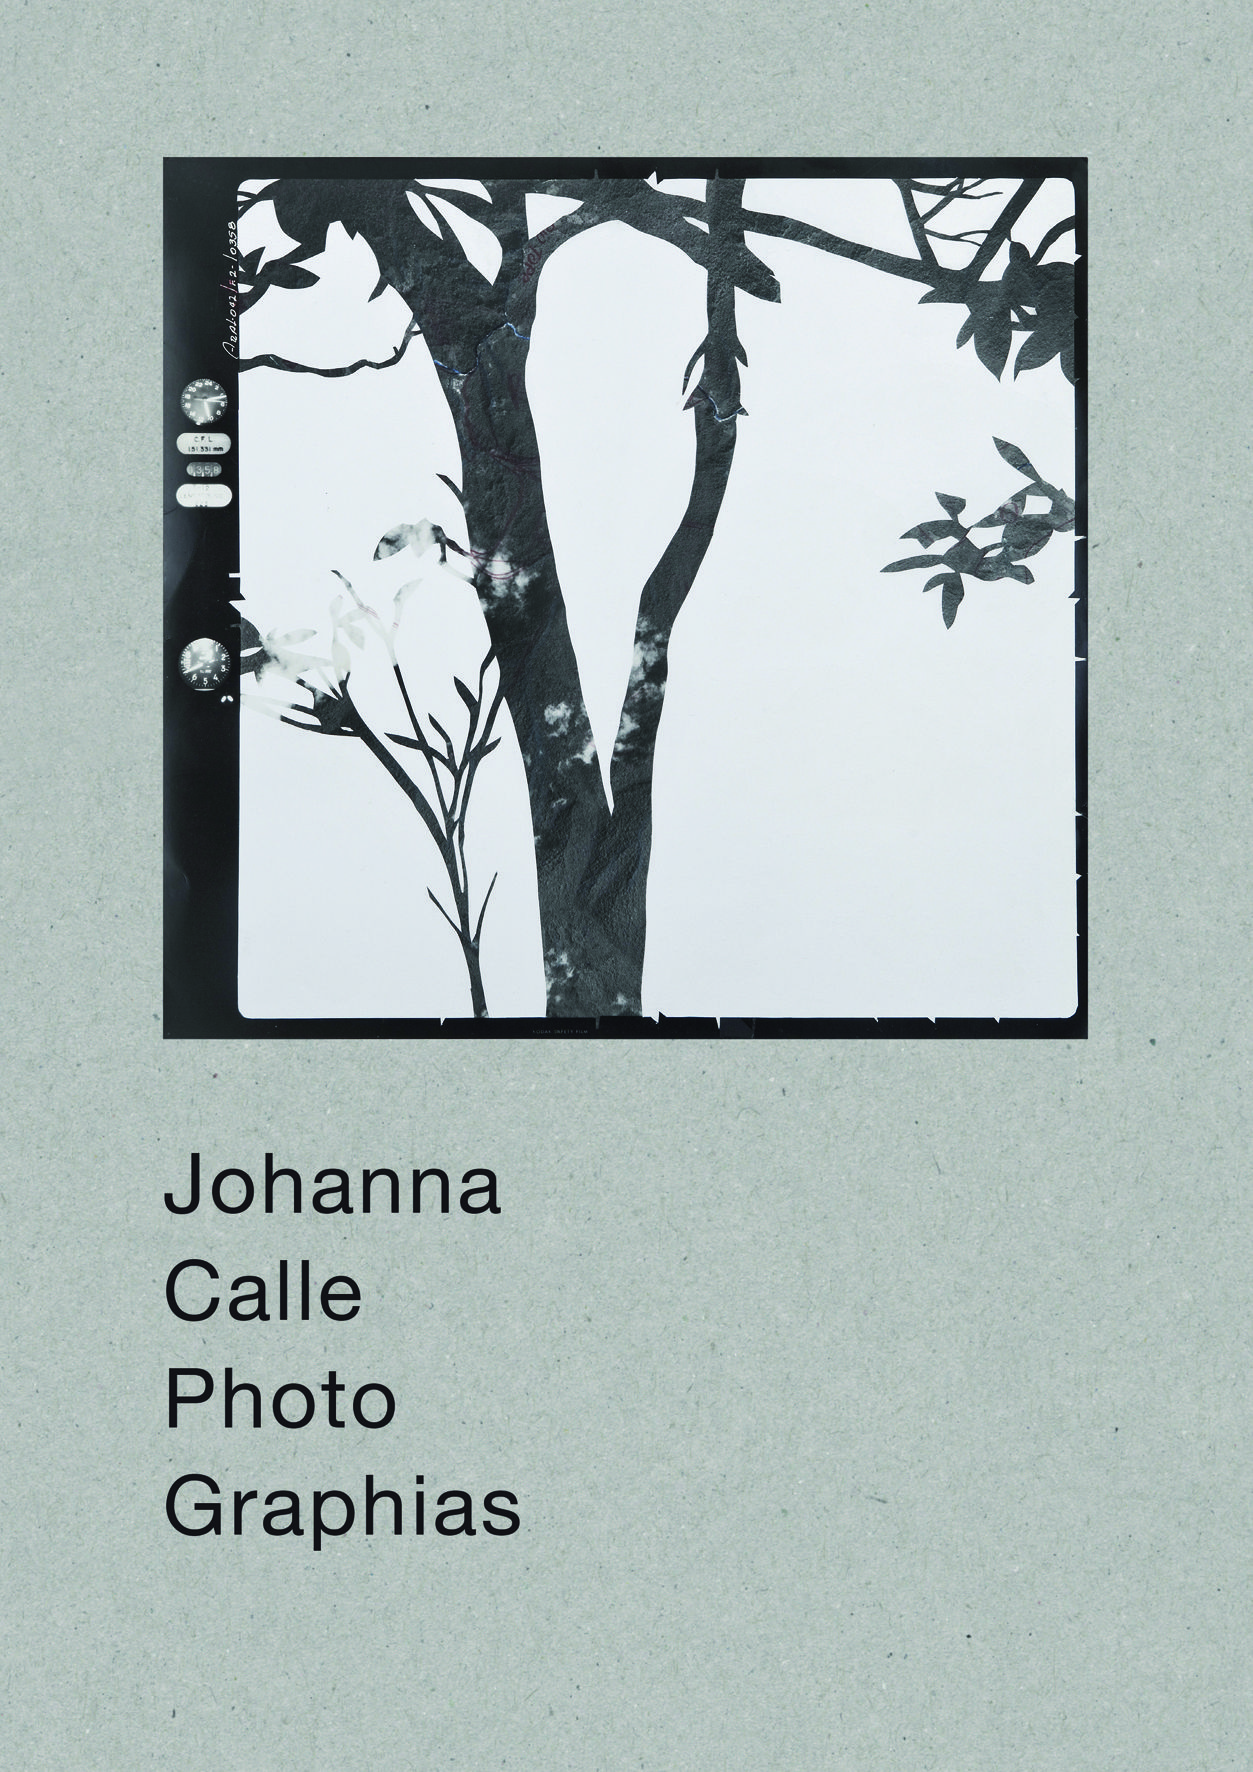 JOHANNA CALLE: PHOTO GRAPHIAS